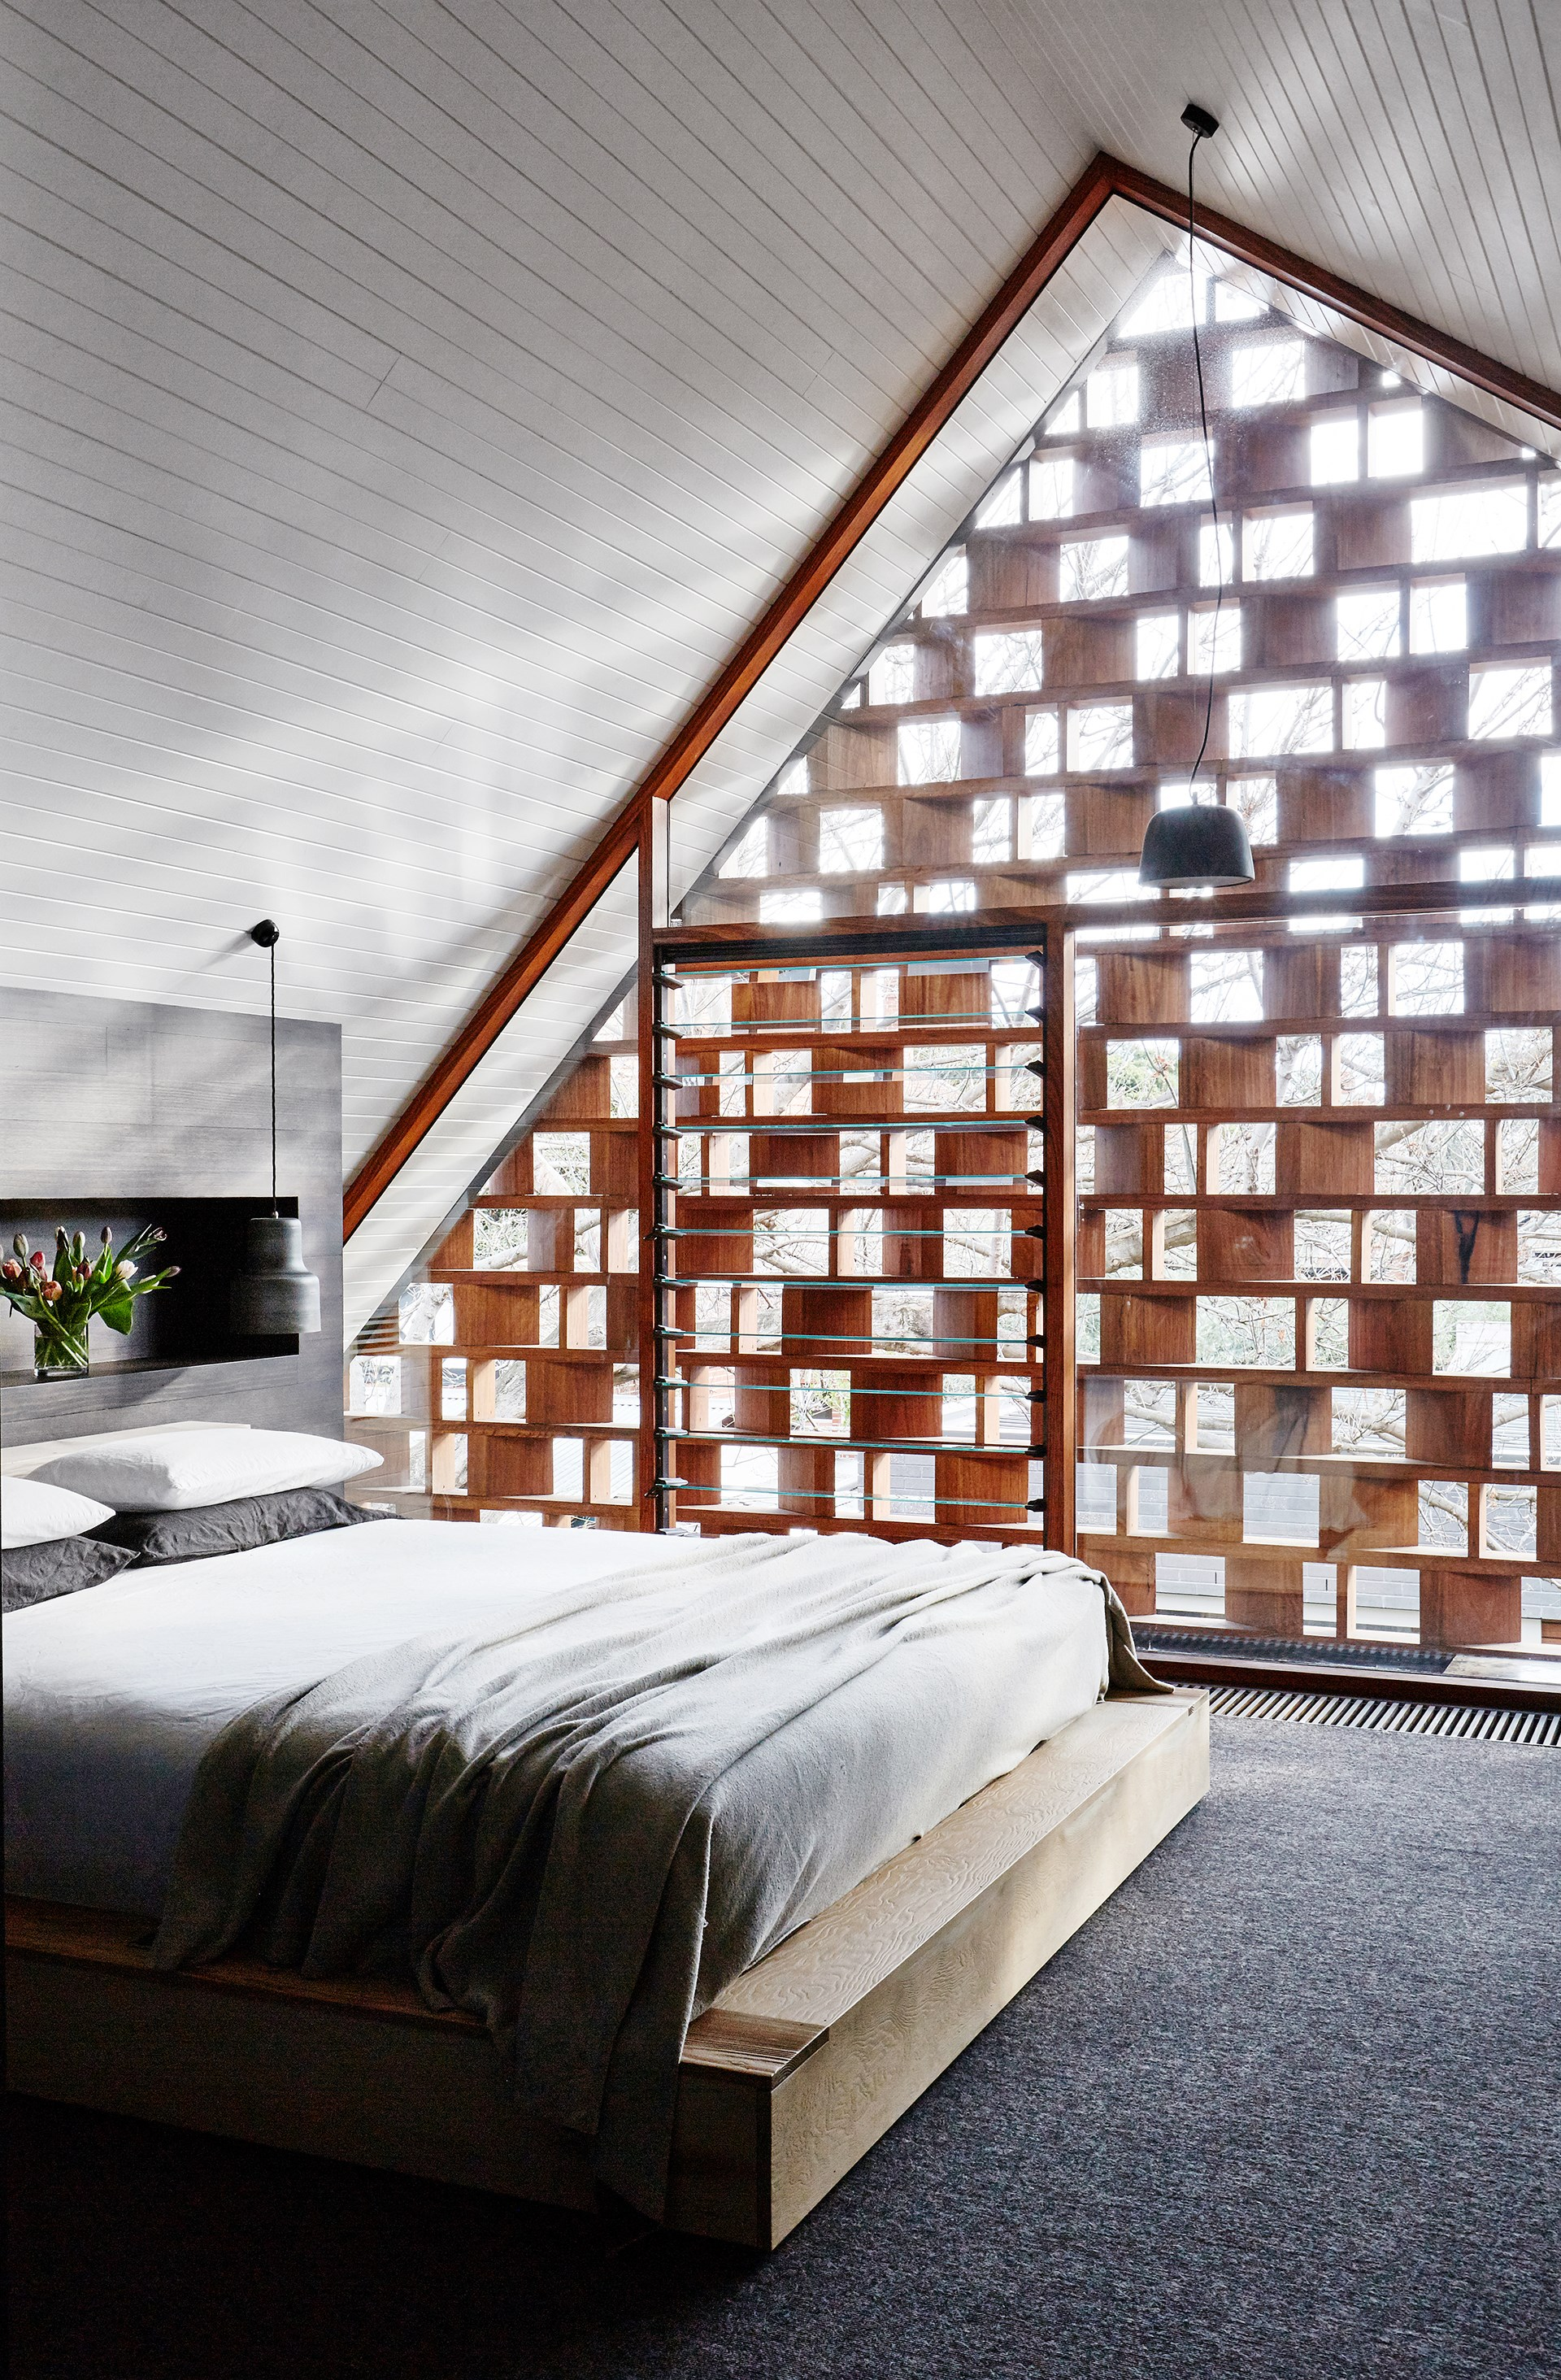 A custom timber screen was designed to provide this master bedroom with privacy, but has also become one of the most distinctive features of this [renovated Californian bungalow in Melbourne](http://www.homestolove.com.au/architects-serve-up-cafe-aesthetic-for-suburban-home-3089). *Photo: Sean Fennessy*